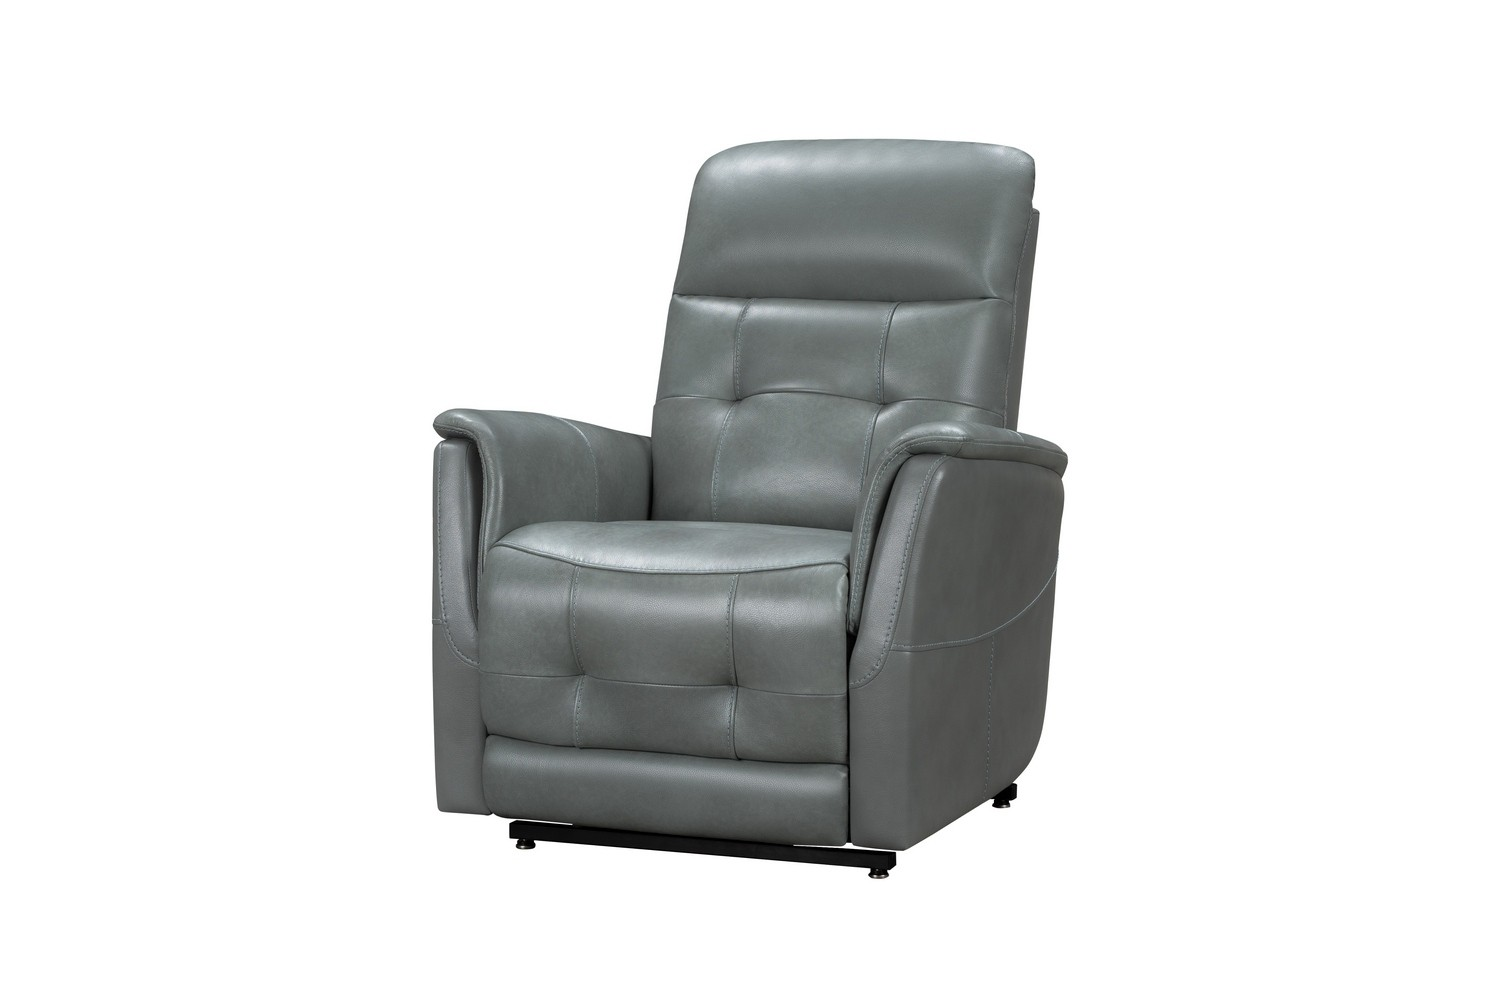 Barcalounger Livingston Lift Chair Recliner Chair with Power Head Rest, Power Lumbar and Lay Flat Mechanism - Antonio Green Gray/Leather Match